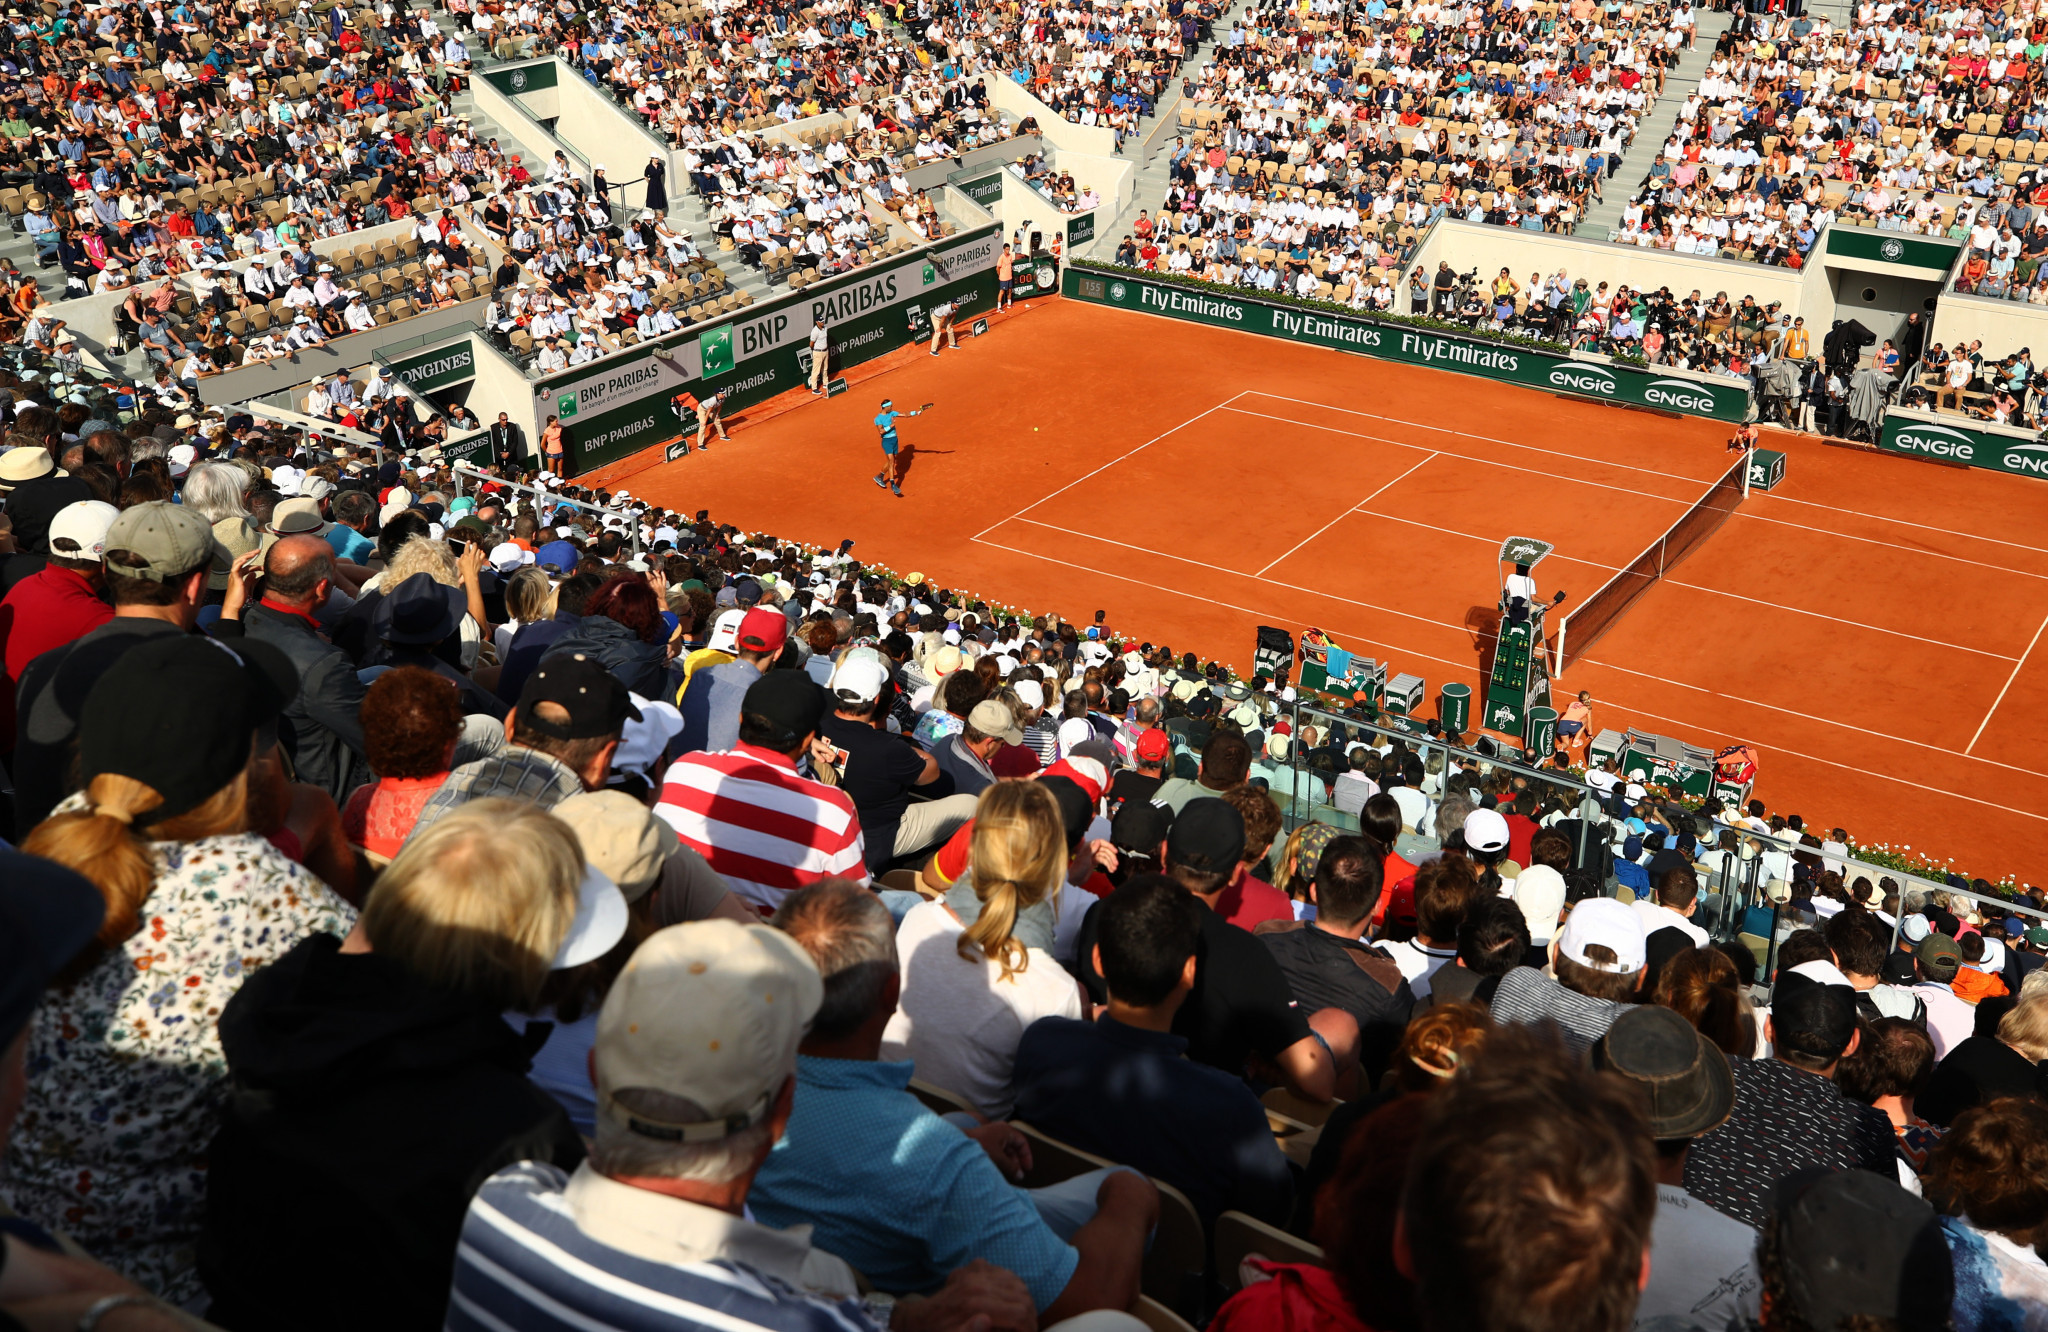 The 2020 French Open will require spectators to leave seats between them as part of safety measures ©Getty Images